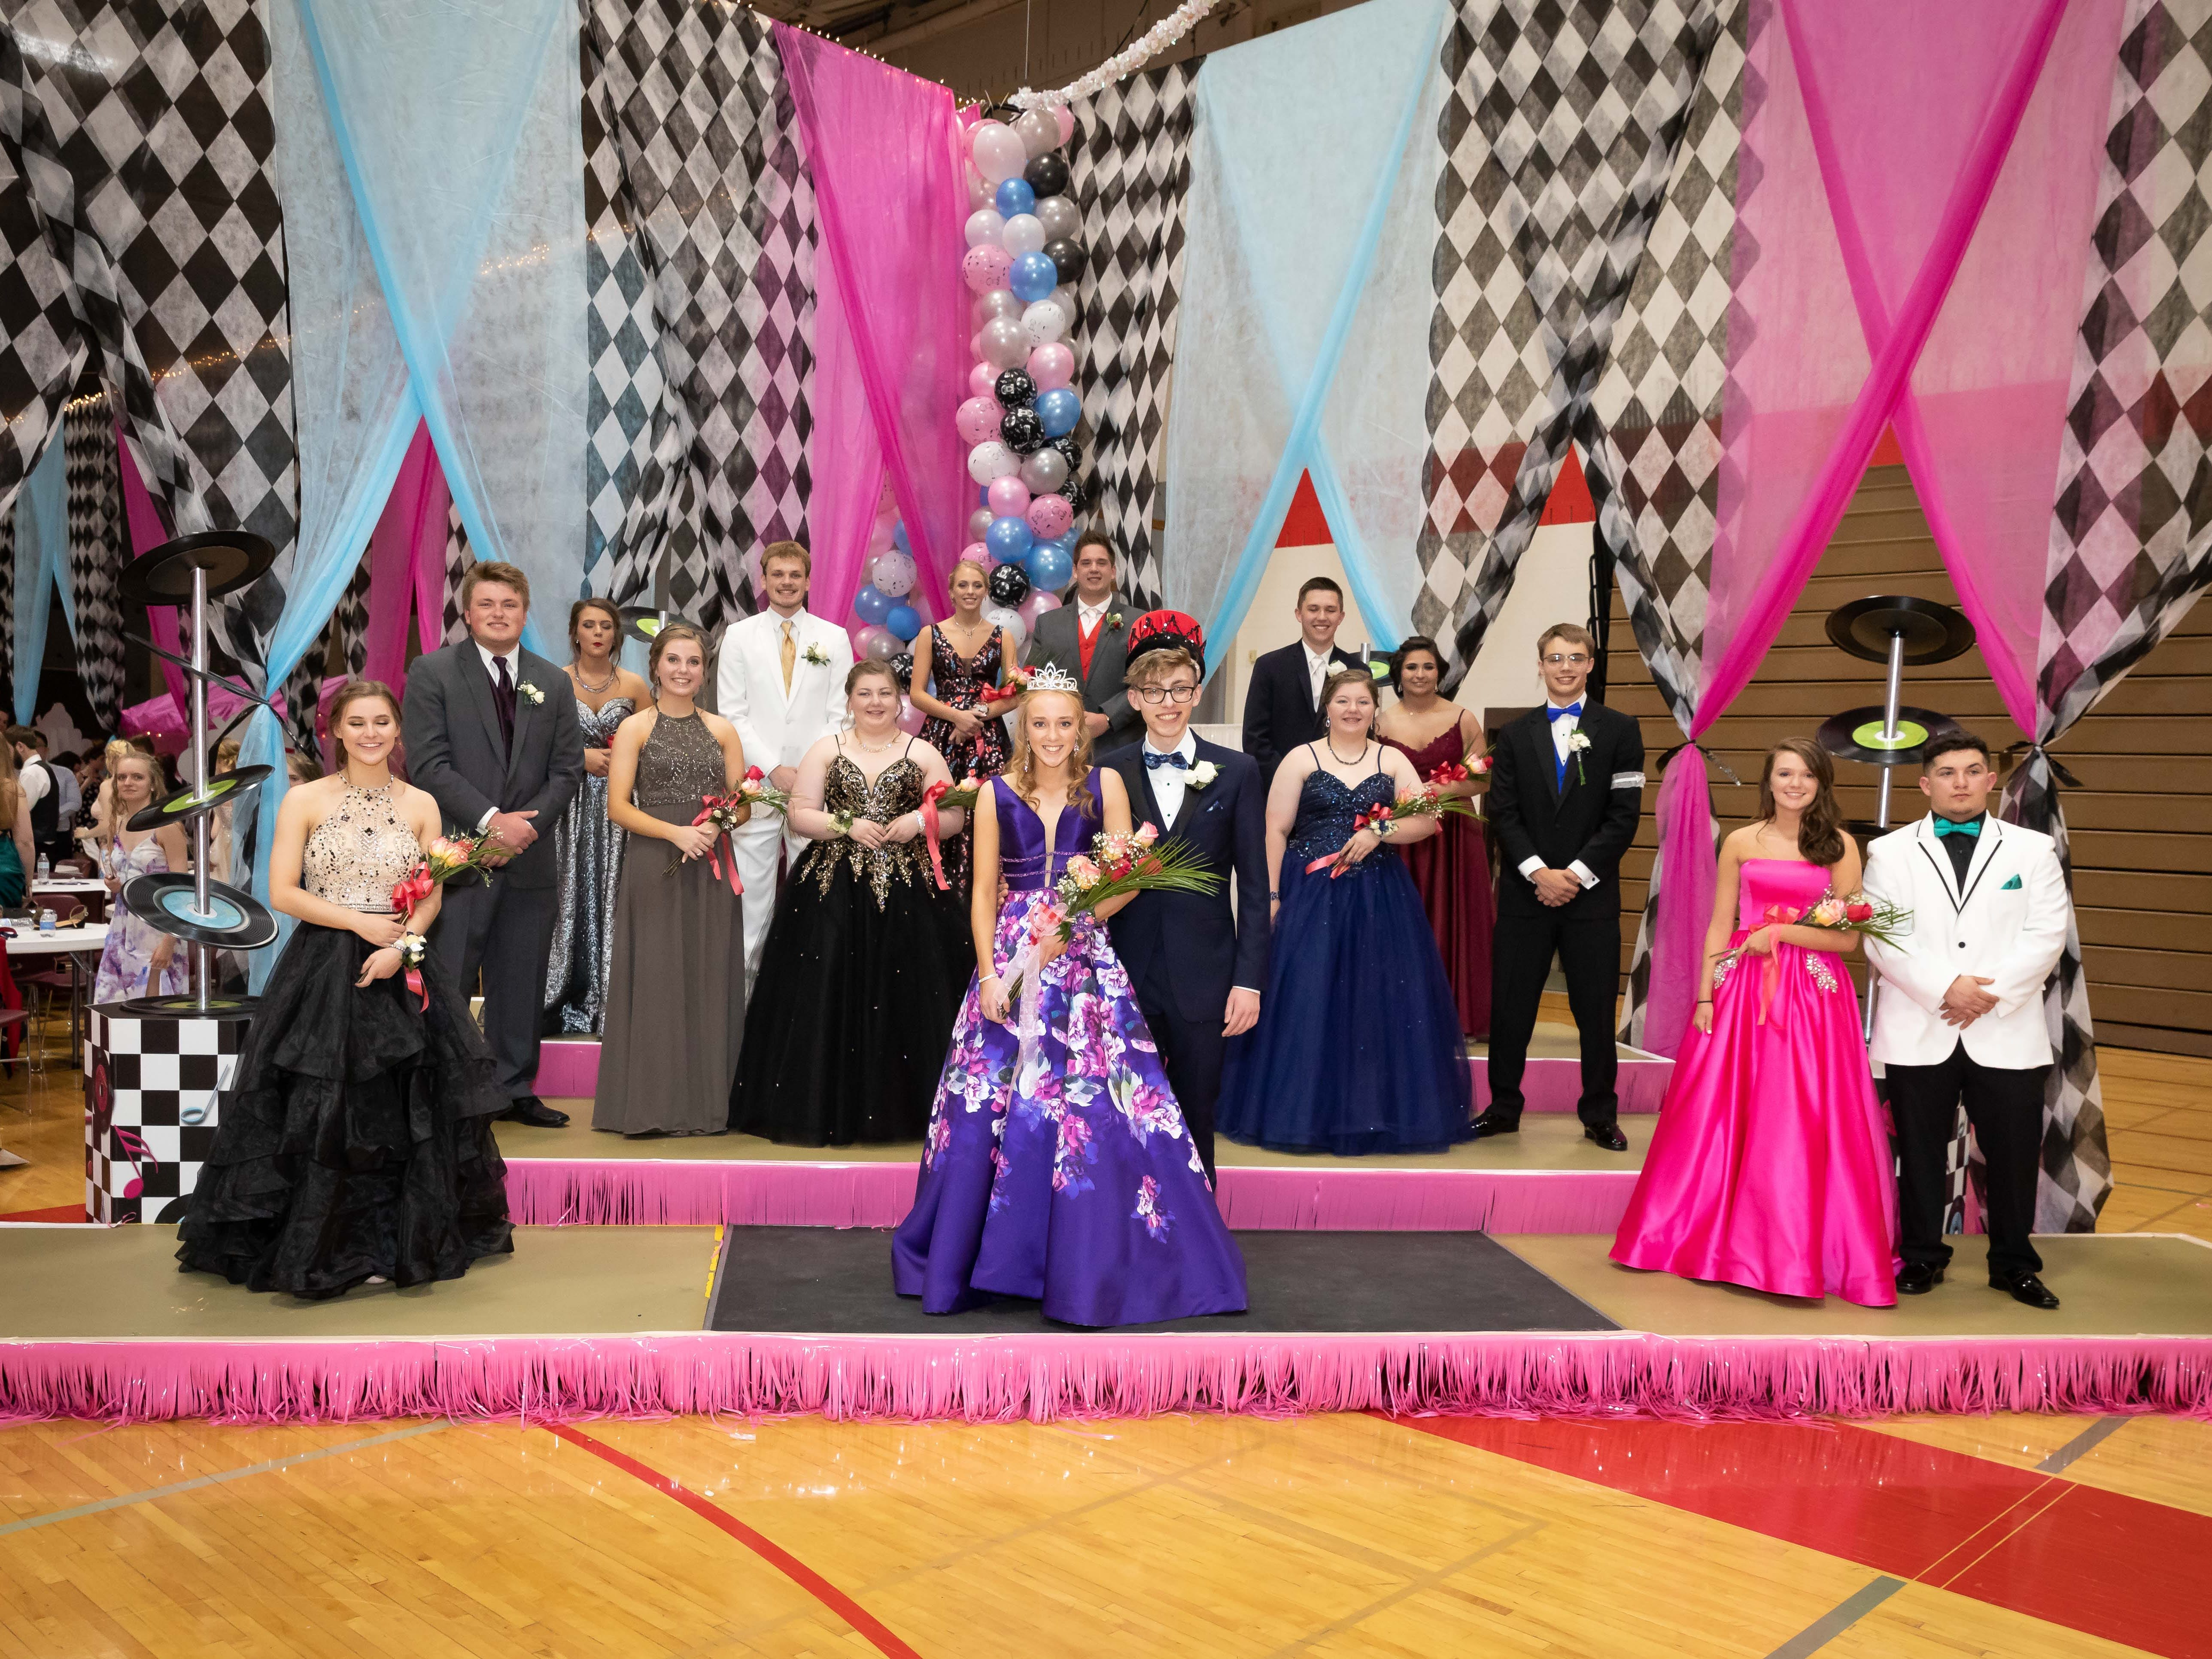 The prom court is announced during the Lincoln High School prom on Saturday, May 4, 2019, at the high school in Wisconsin Rapids.